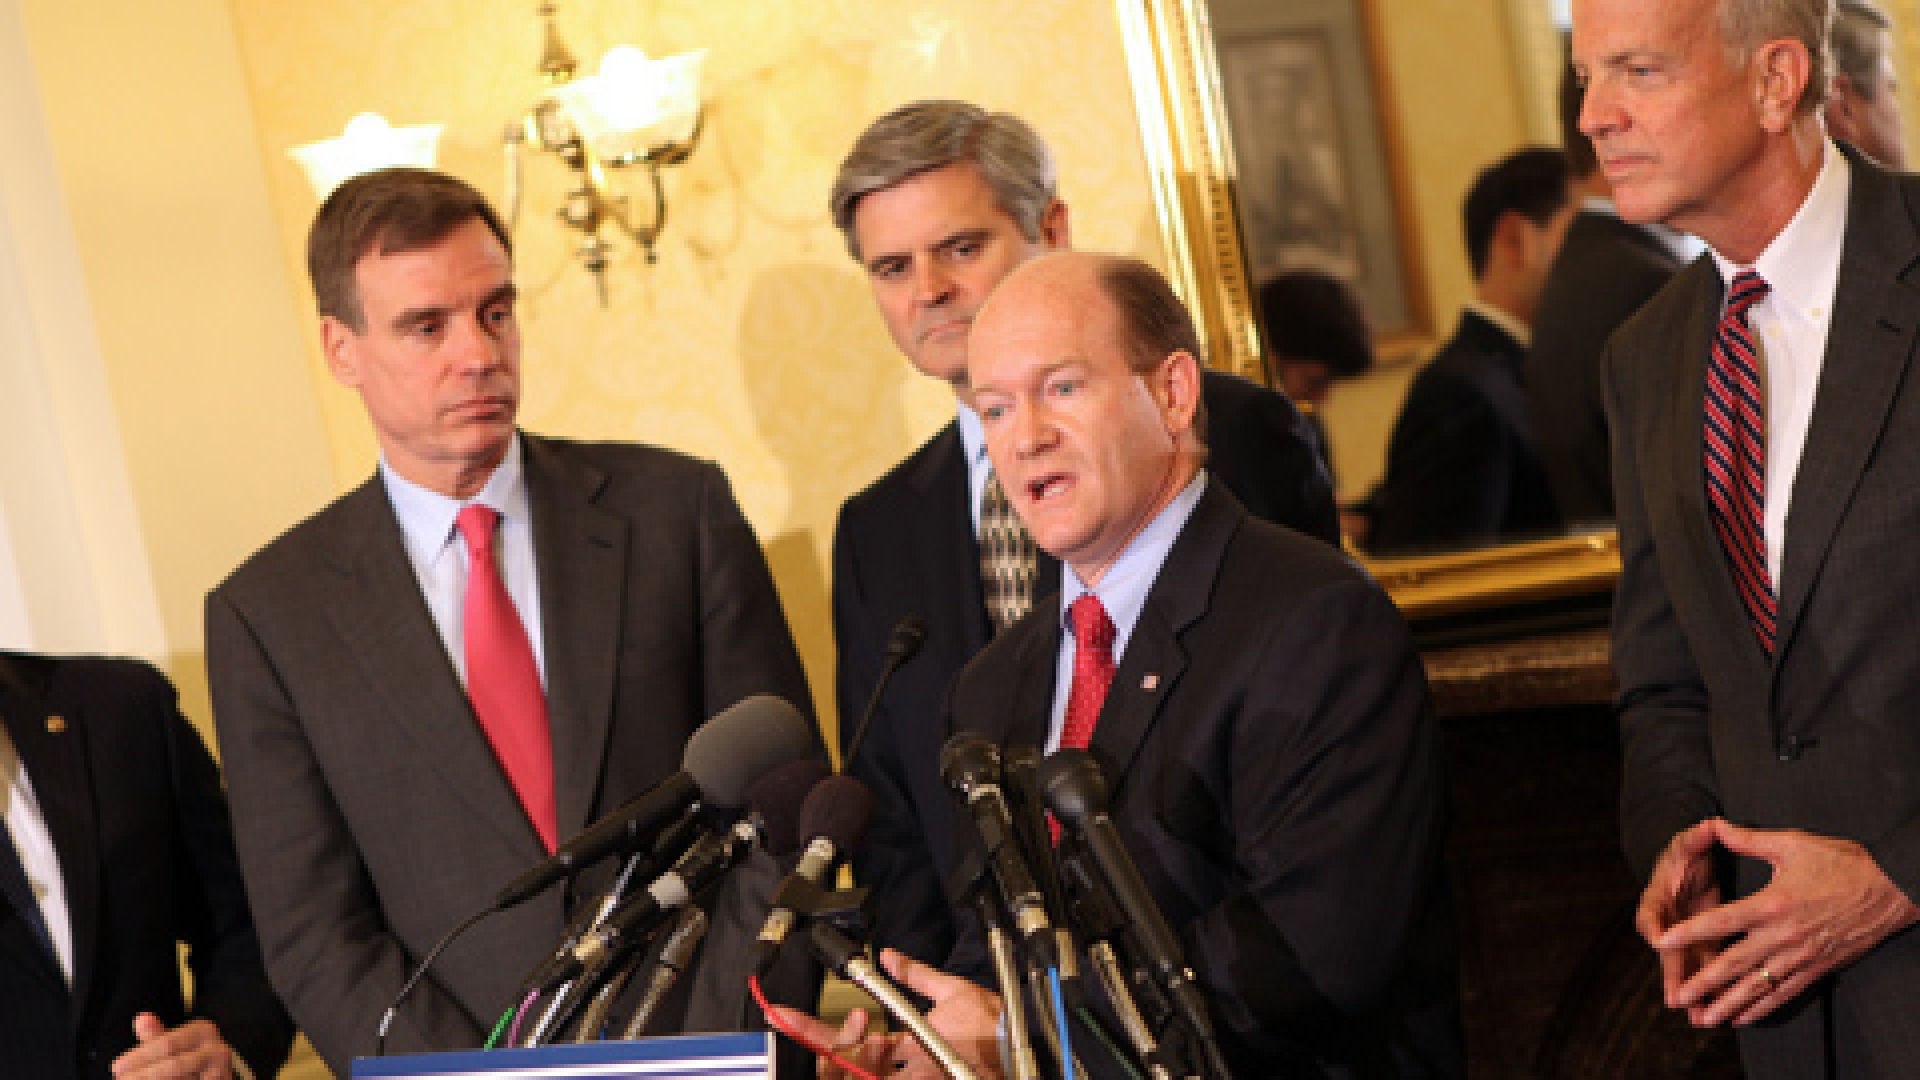 Senators gather with AOL founder Steve Case to announce Startup Act 2.0 in May 2012. From left: Marco Rubio (R-Florida), Mark Warner (D-Virginia), Case, Chris Coons (D-Delaware), and Jerry Moran (R-Kansas).